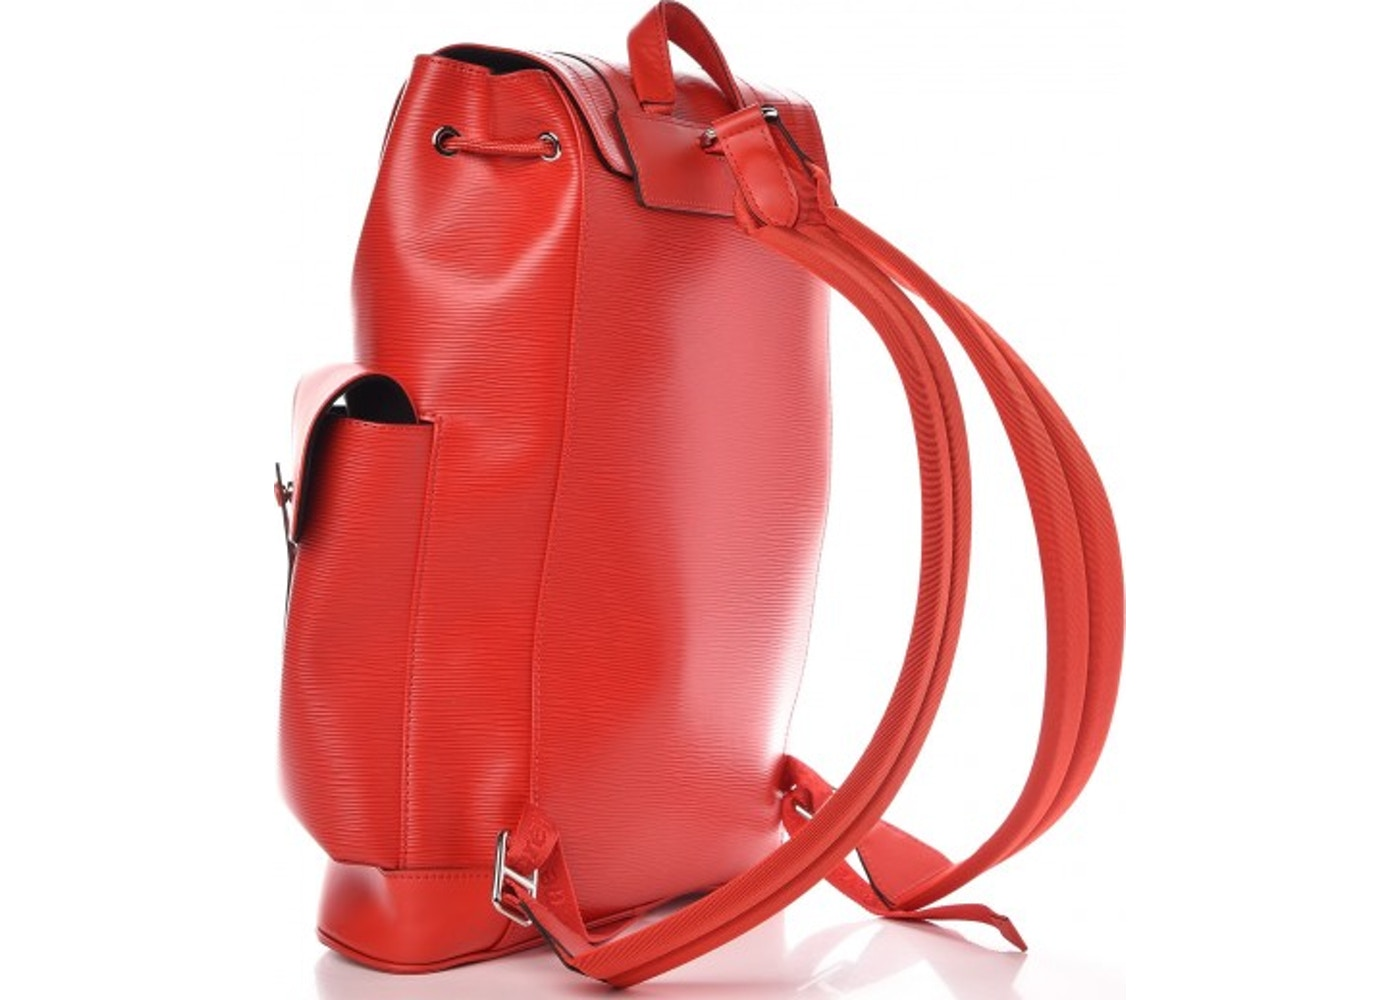 47c8522143a7 Louis Vuitton x Supreme Christopher Backpack Epi PM Red